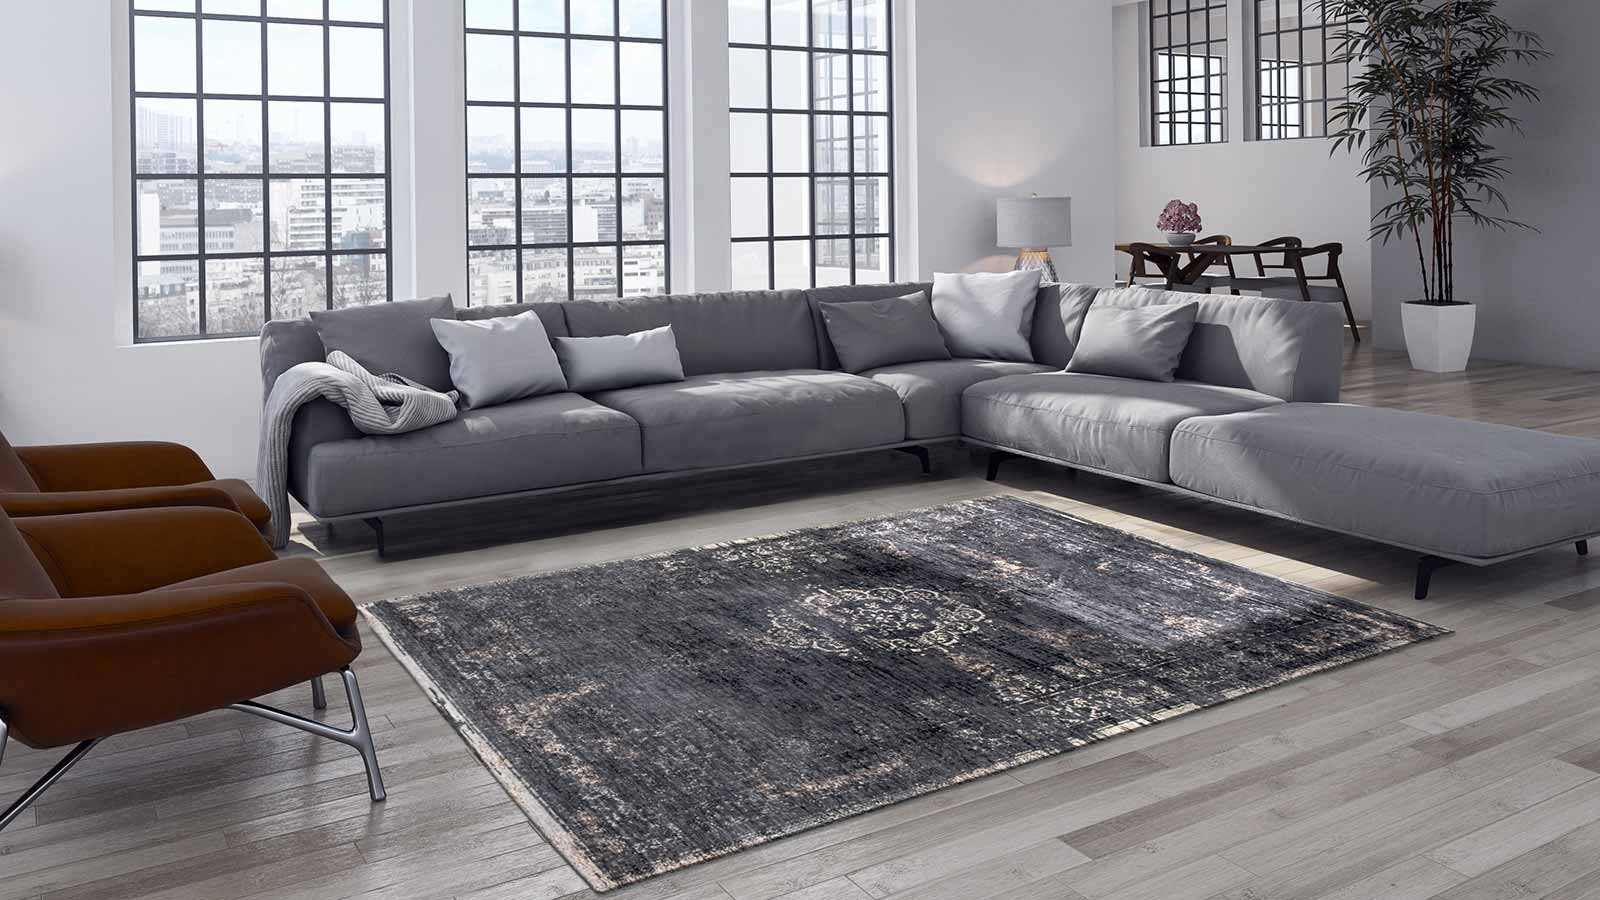 rug Louis De Poortere LX8263 Fading World Medaillon Mineral Black interior